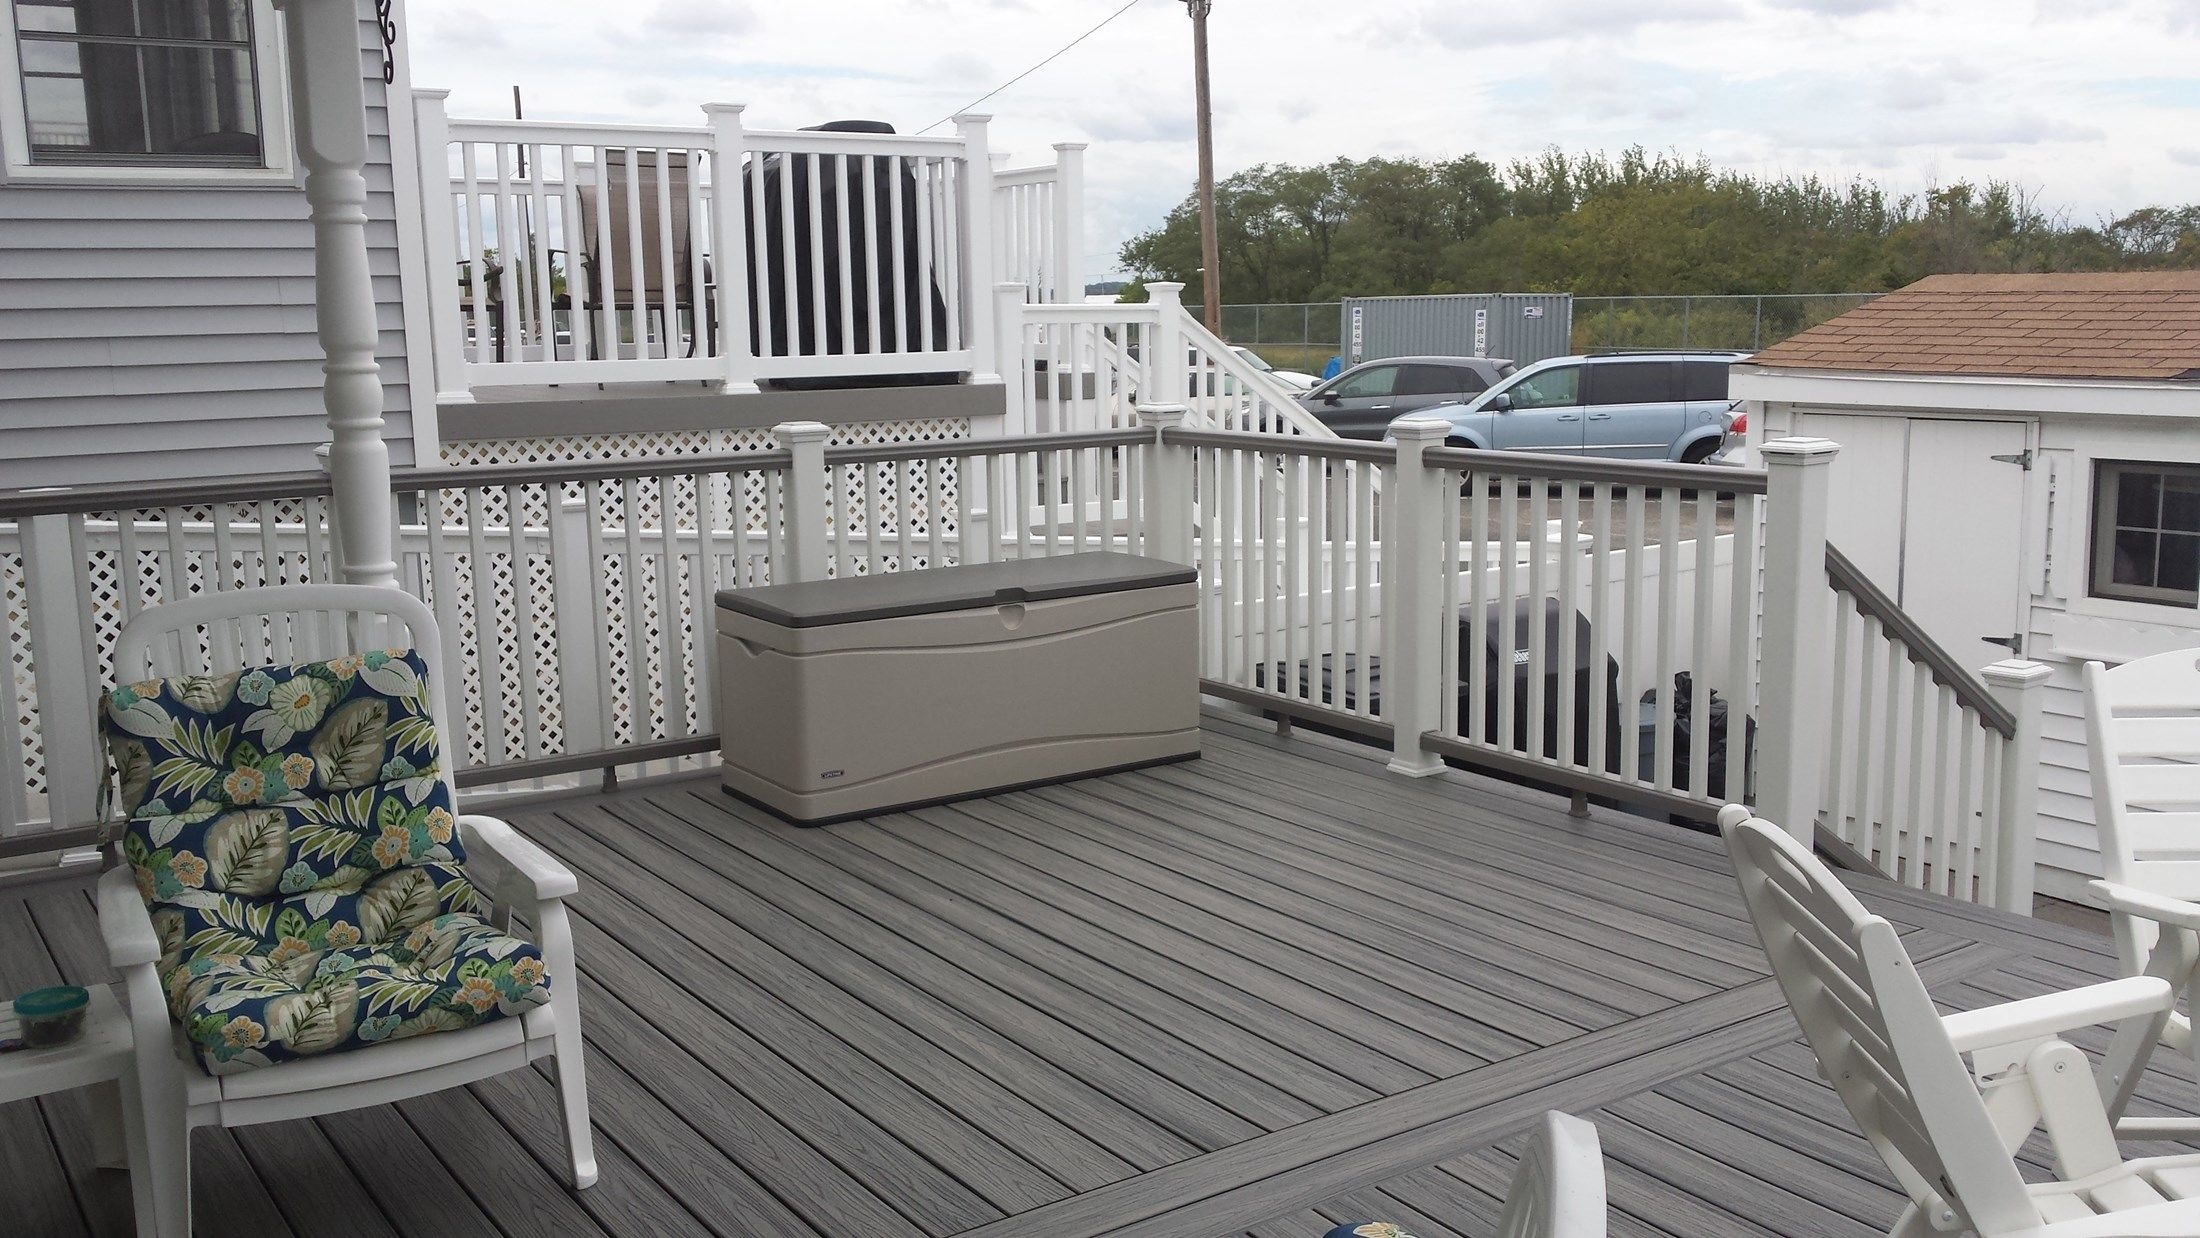 Transcends tropics island mist picture 1826 for Who makes tropics decking